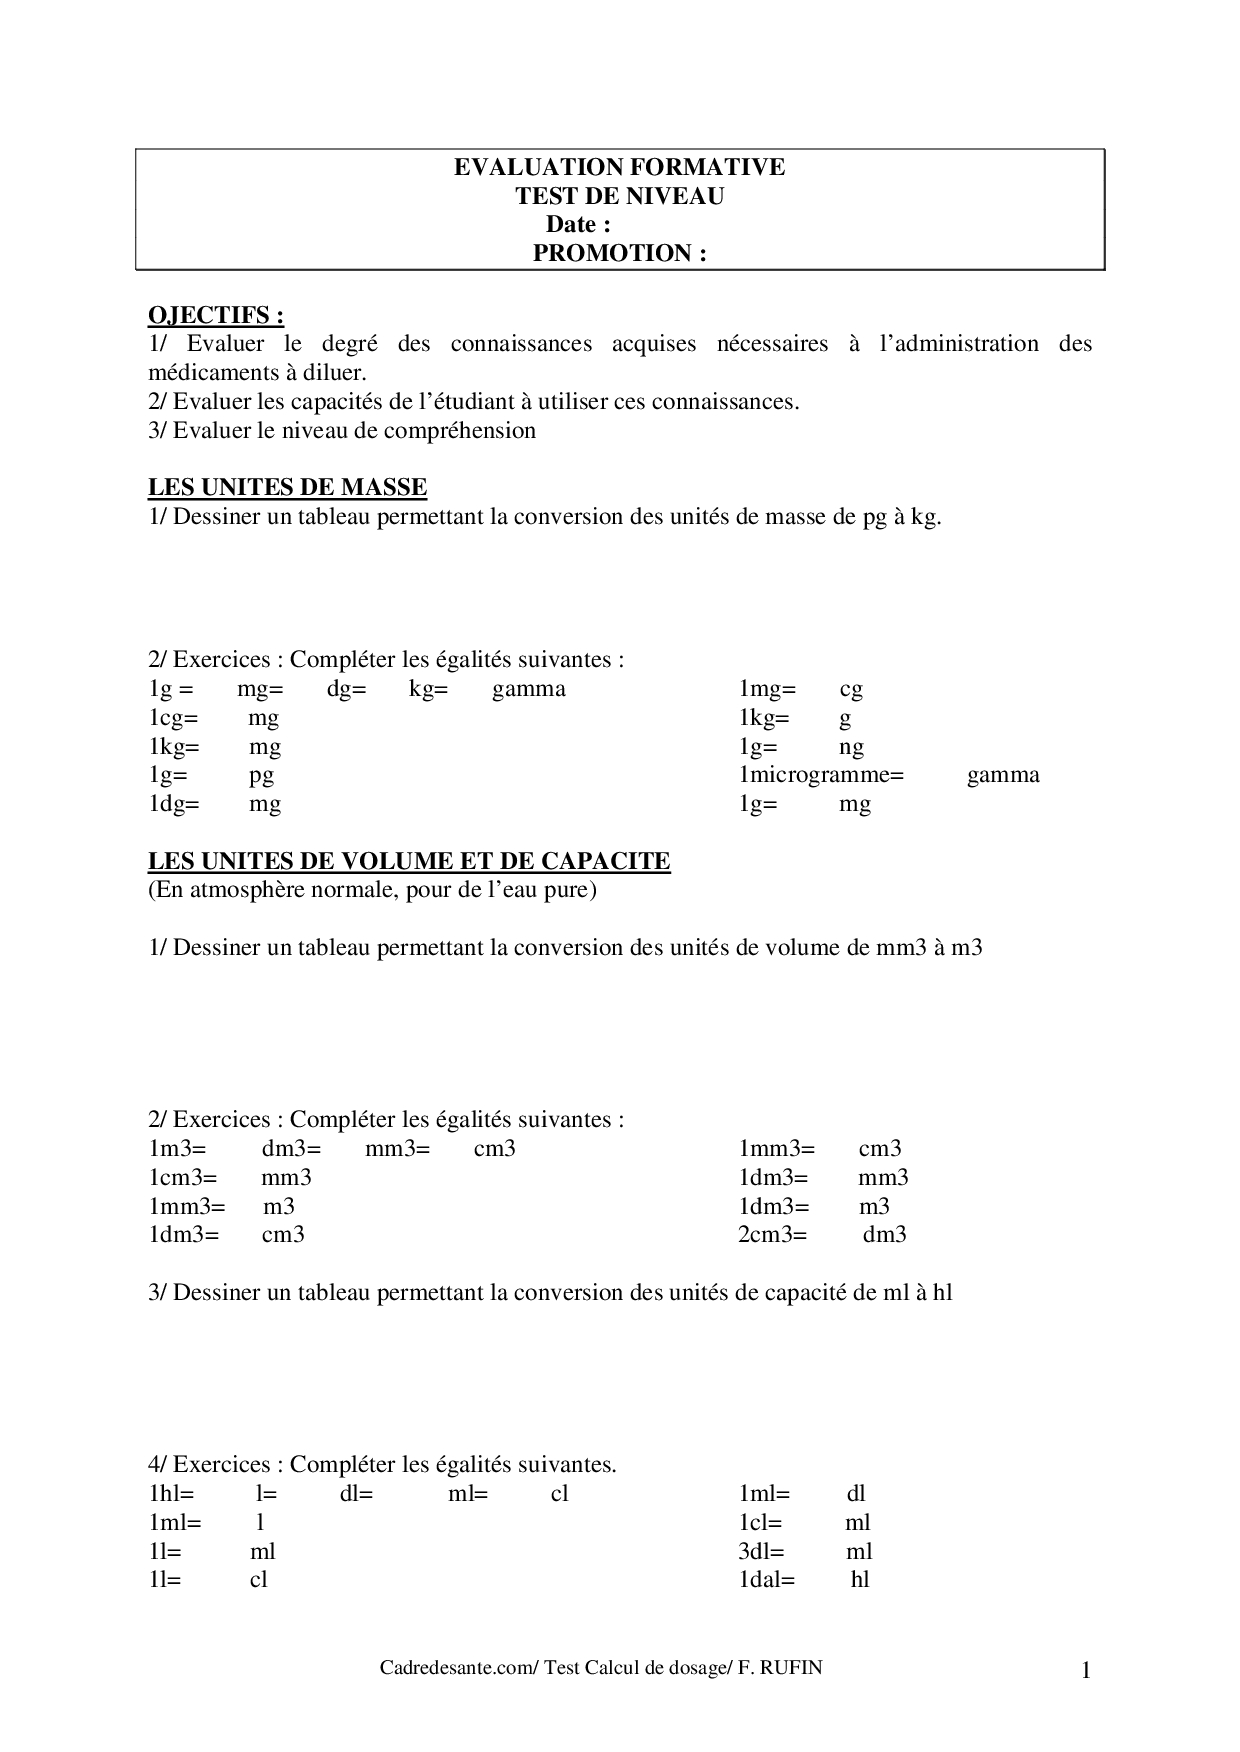 Évaluation Formative Calcul De Dosage - Docsity serapportantà Dessin Chiffre Romain